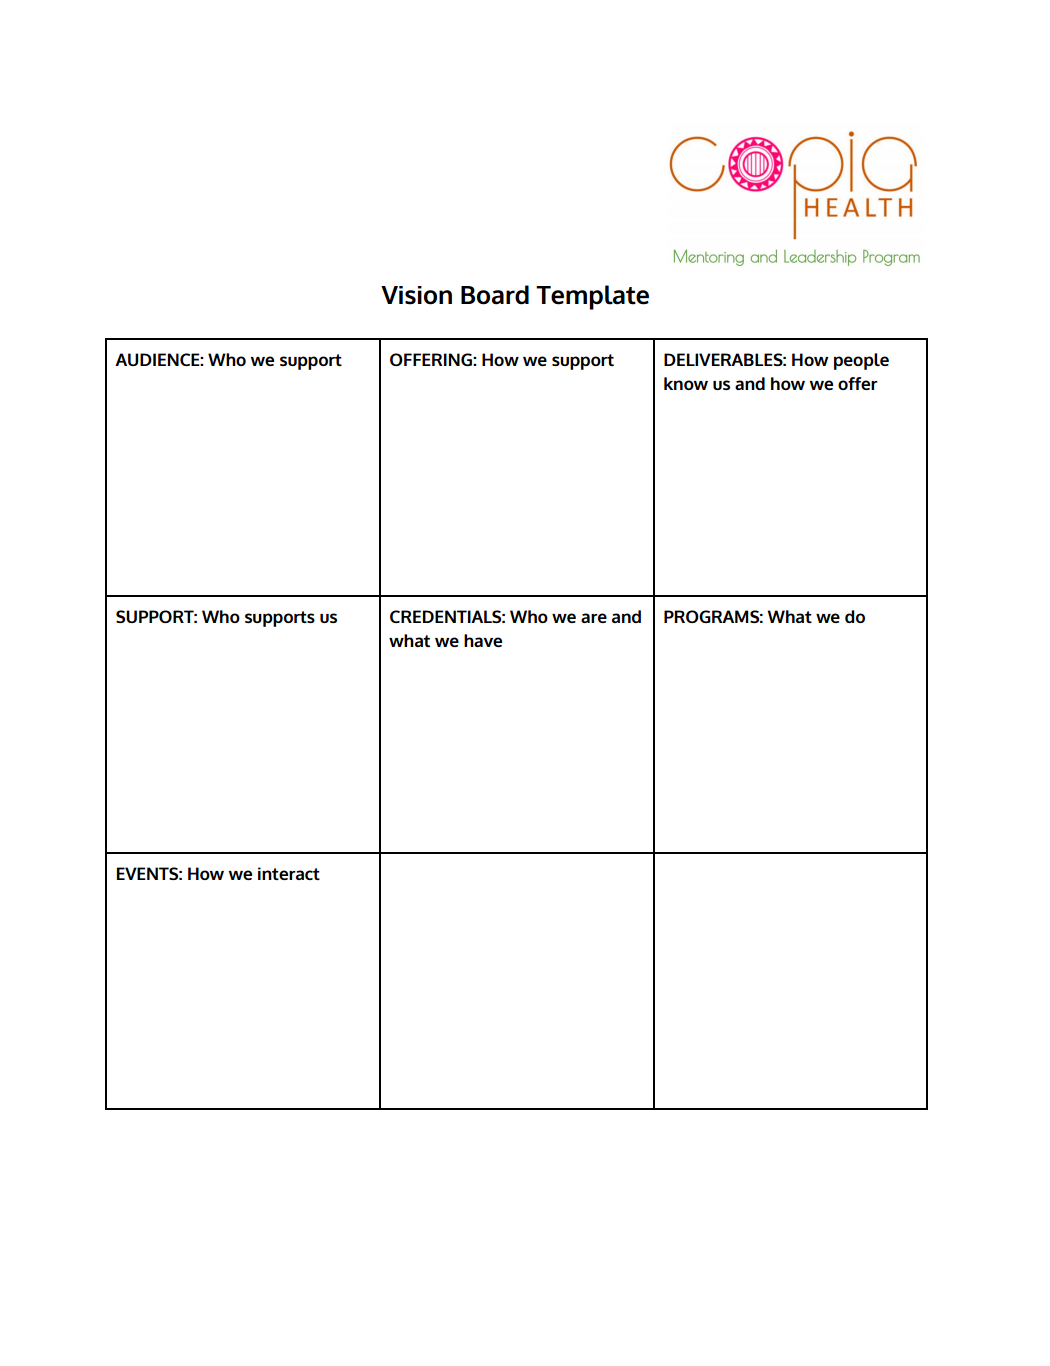 VISION BOARD TEMPLATE ACTIVITY